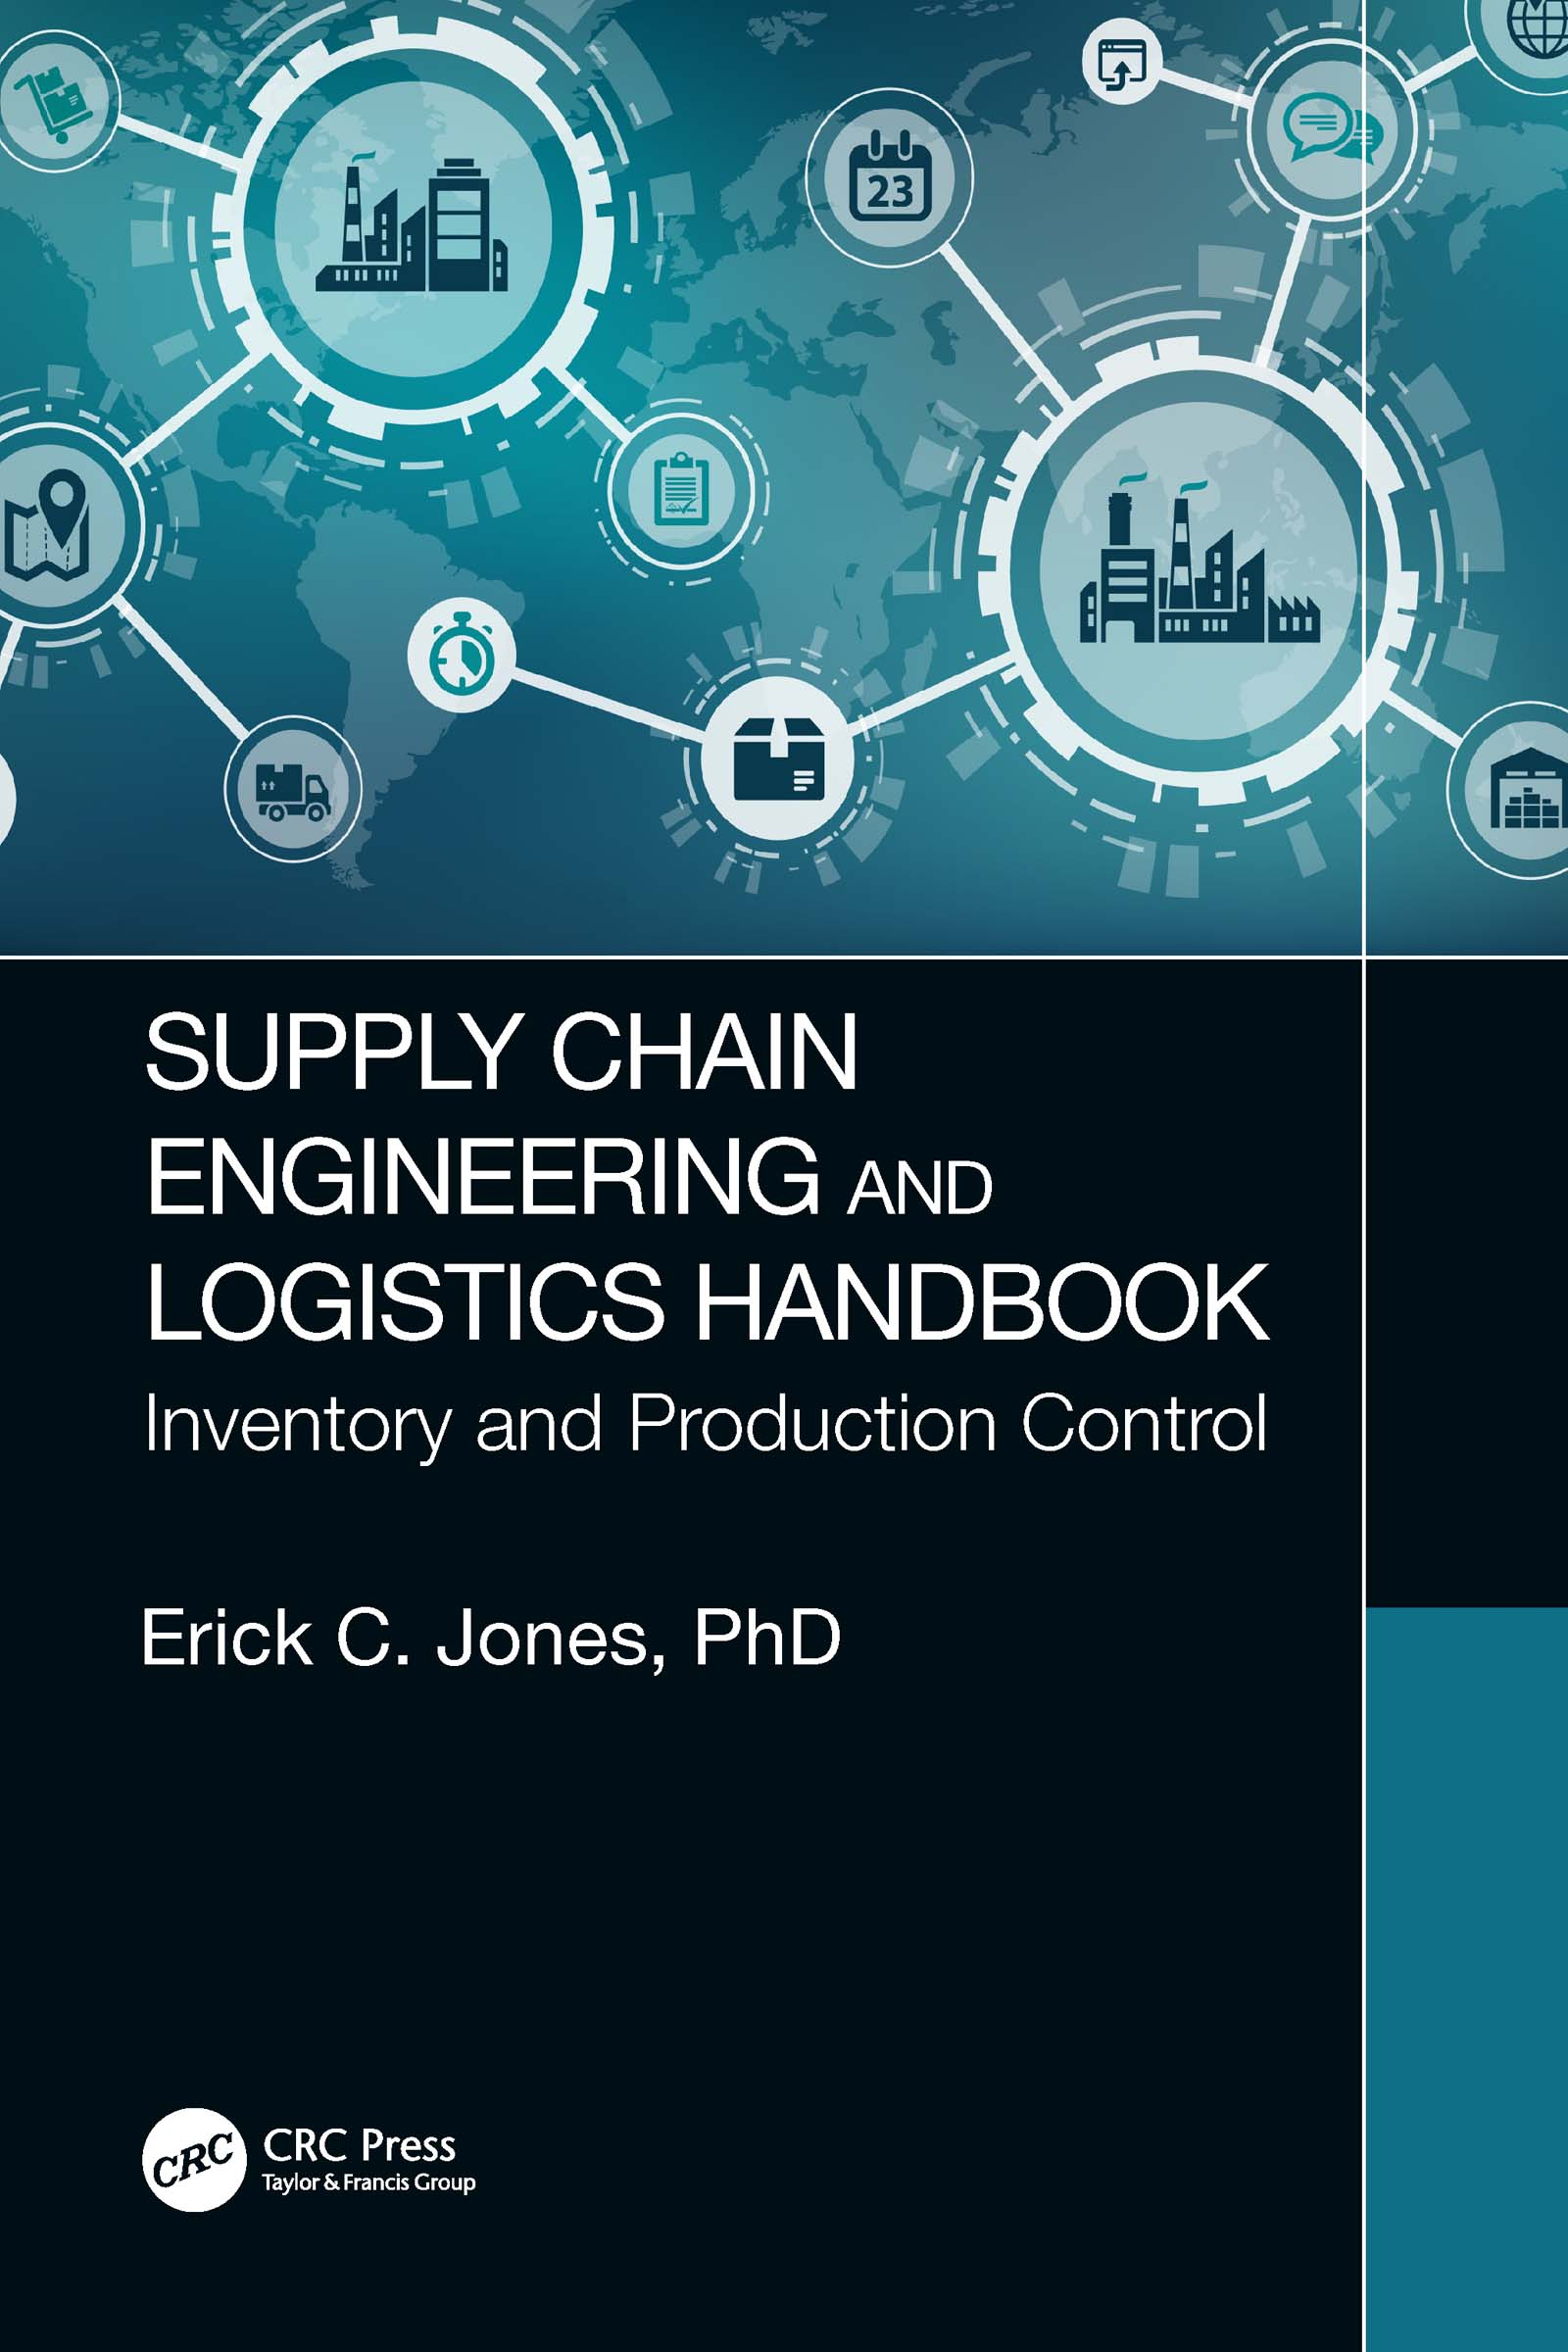 Supply Chain Engineering and Logistics Handbook: Inventory and Production Control book cover